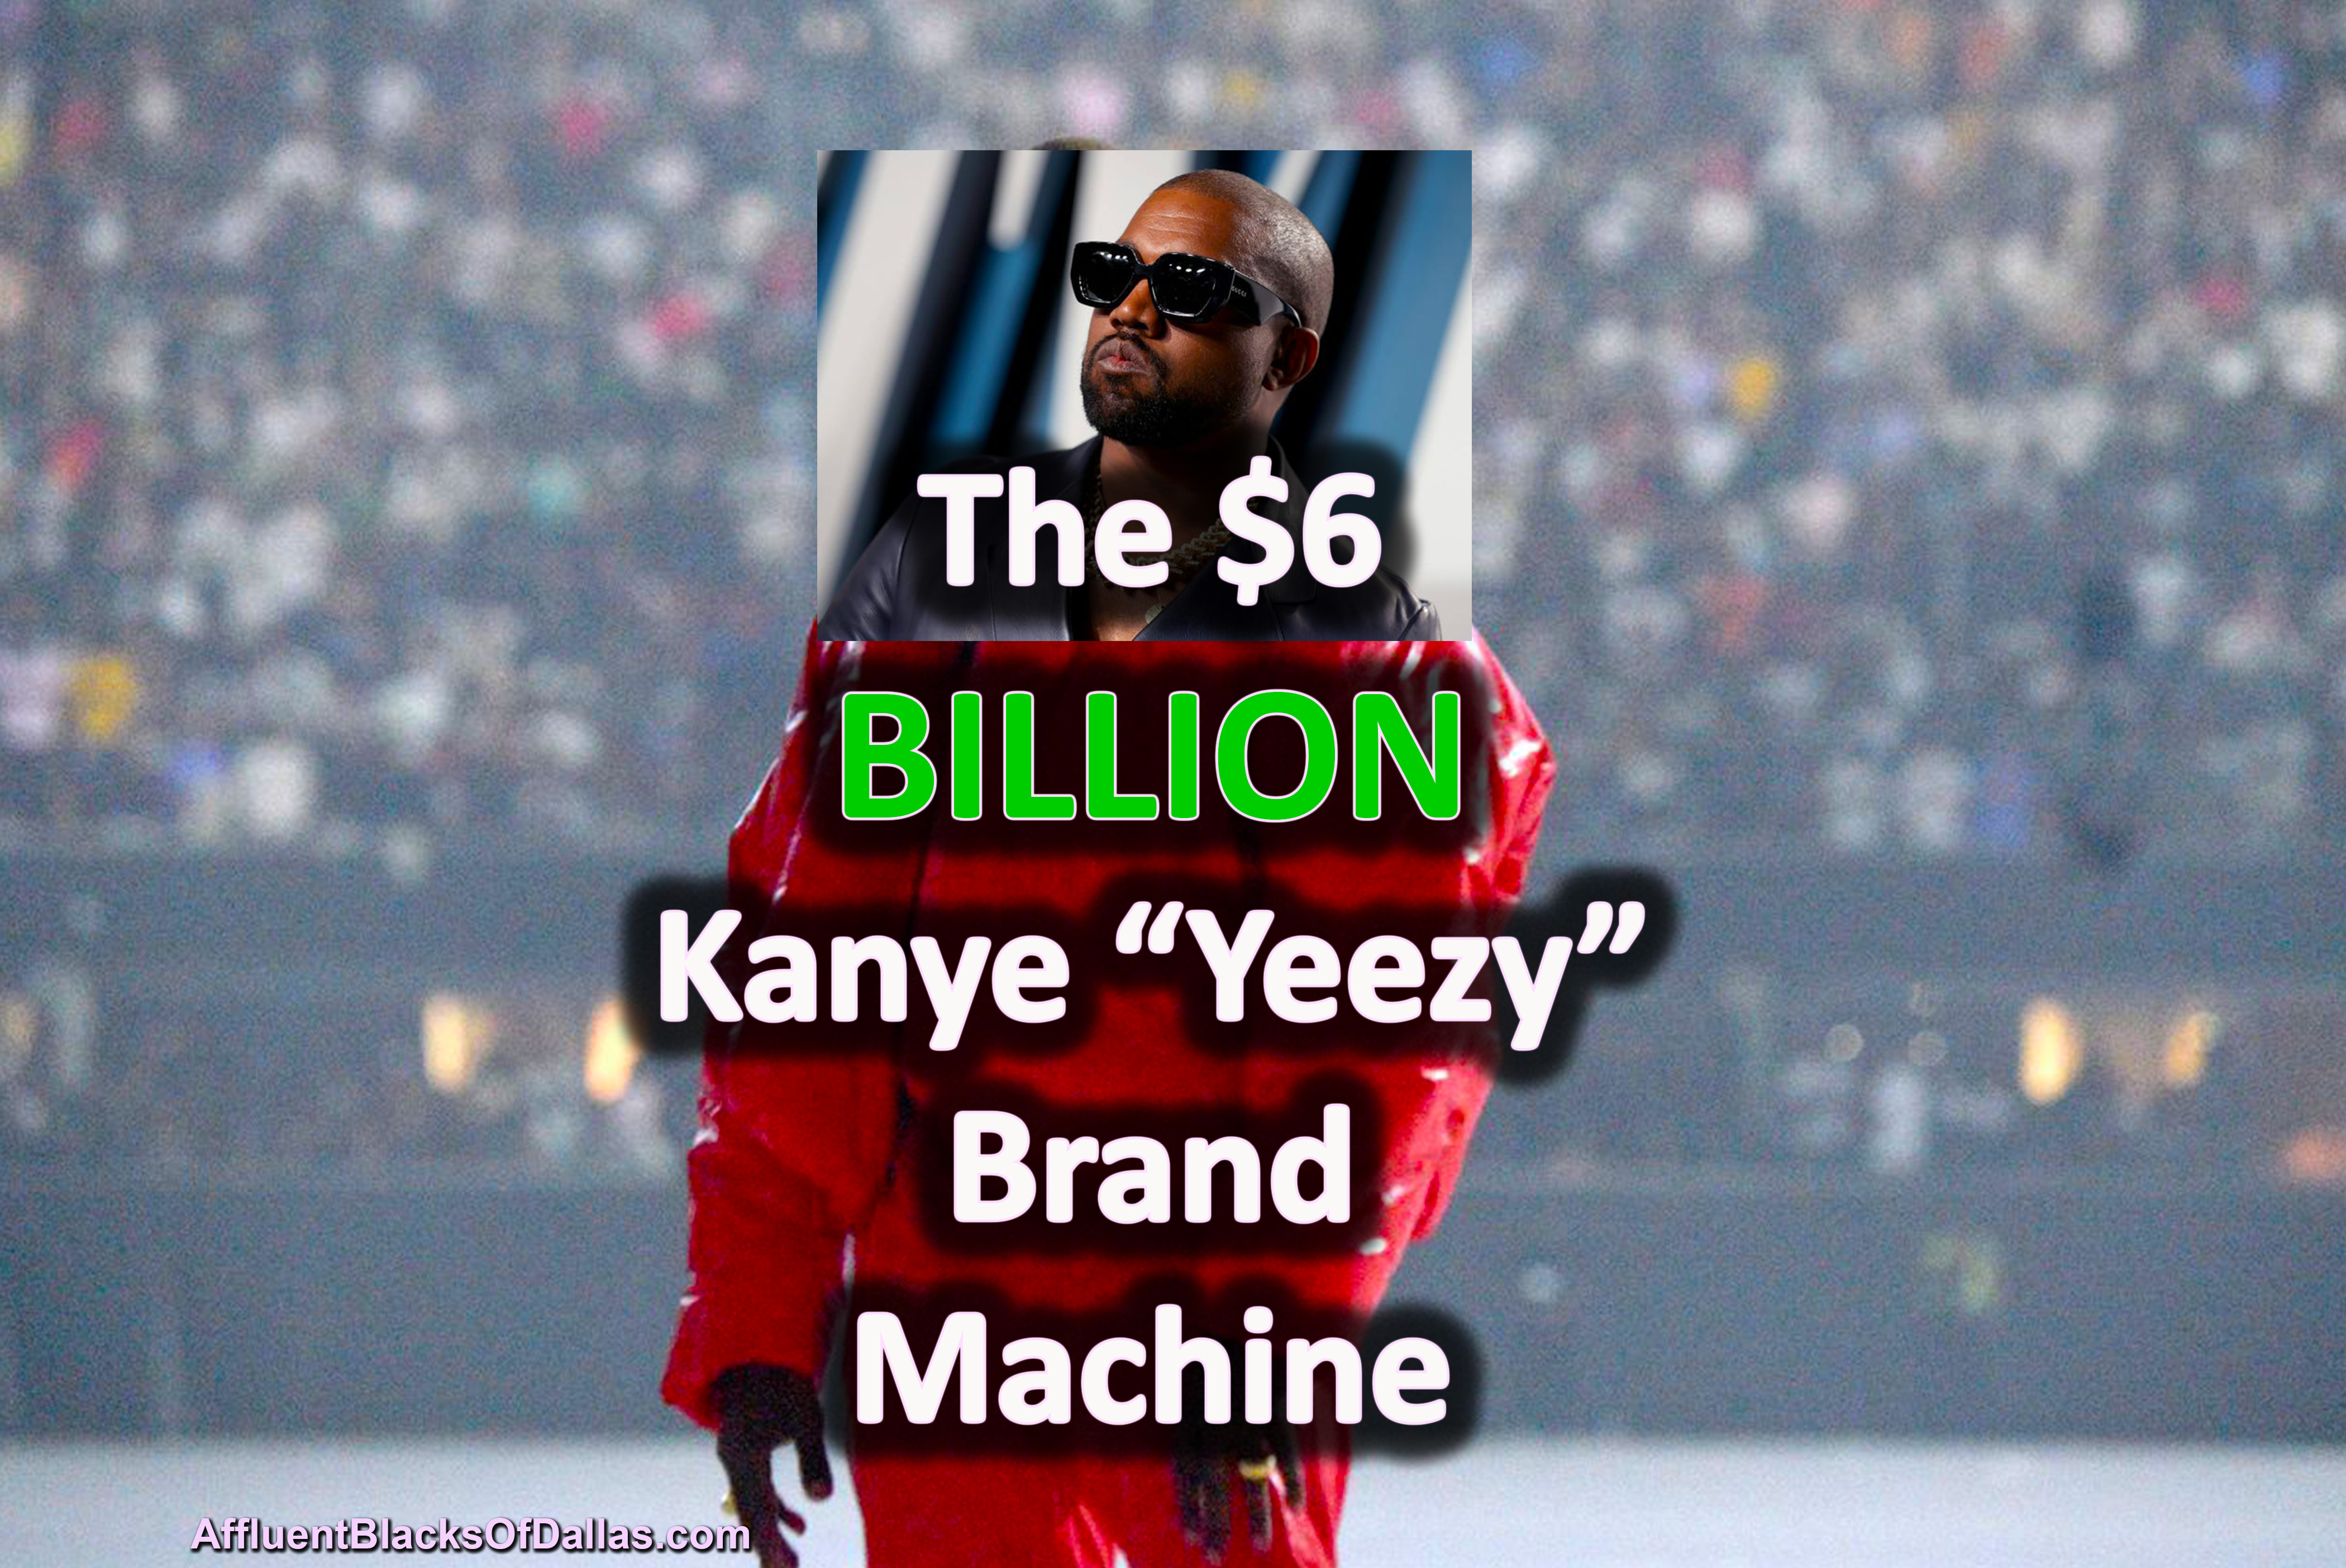 Is Kanye's 'Donda' Album, Drake Beef Helping or Hurting His Business? Lessons on PR Branding